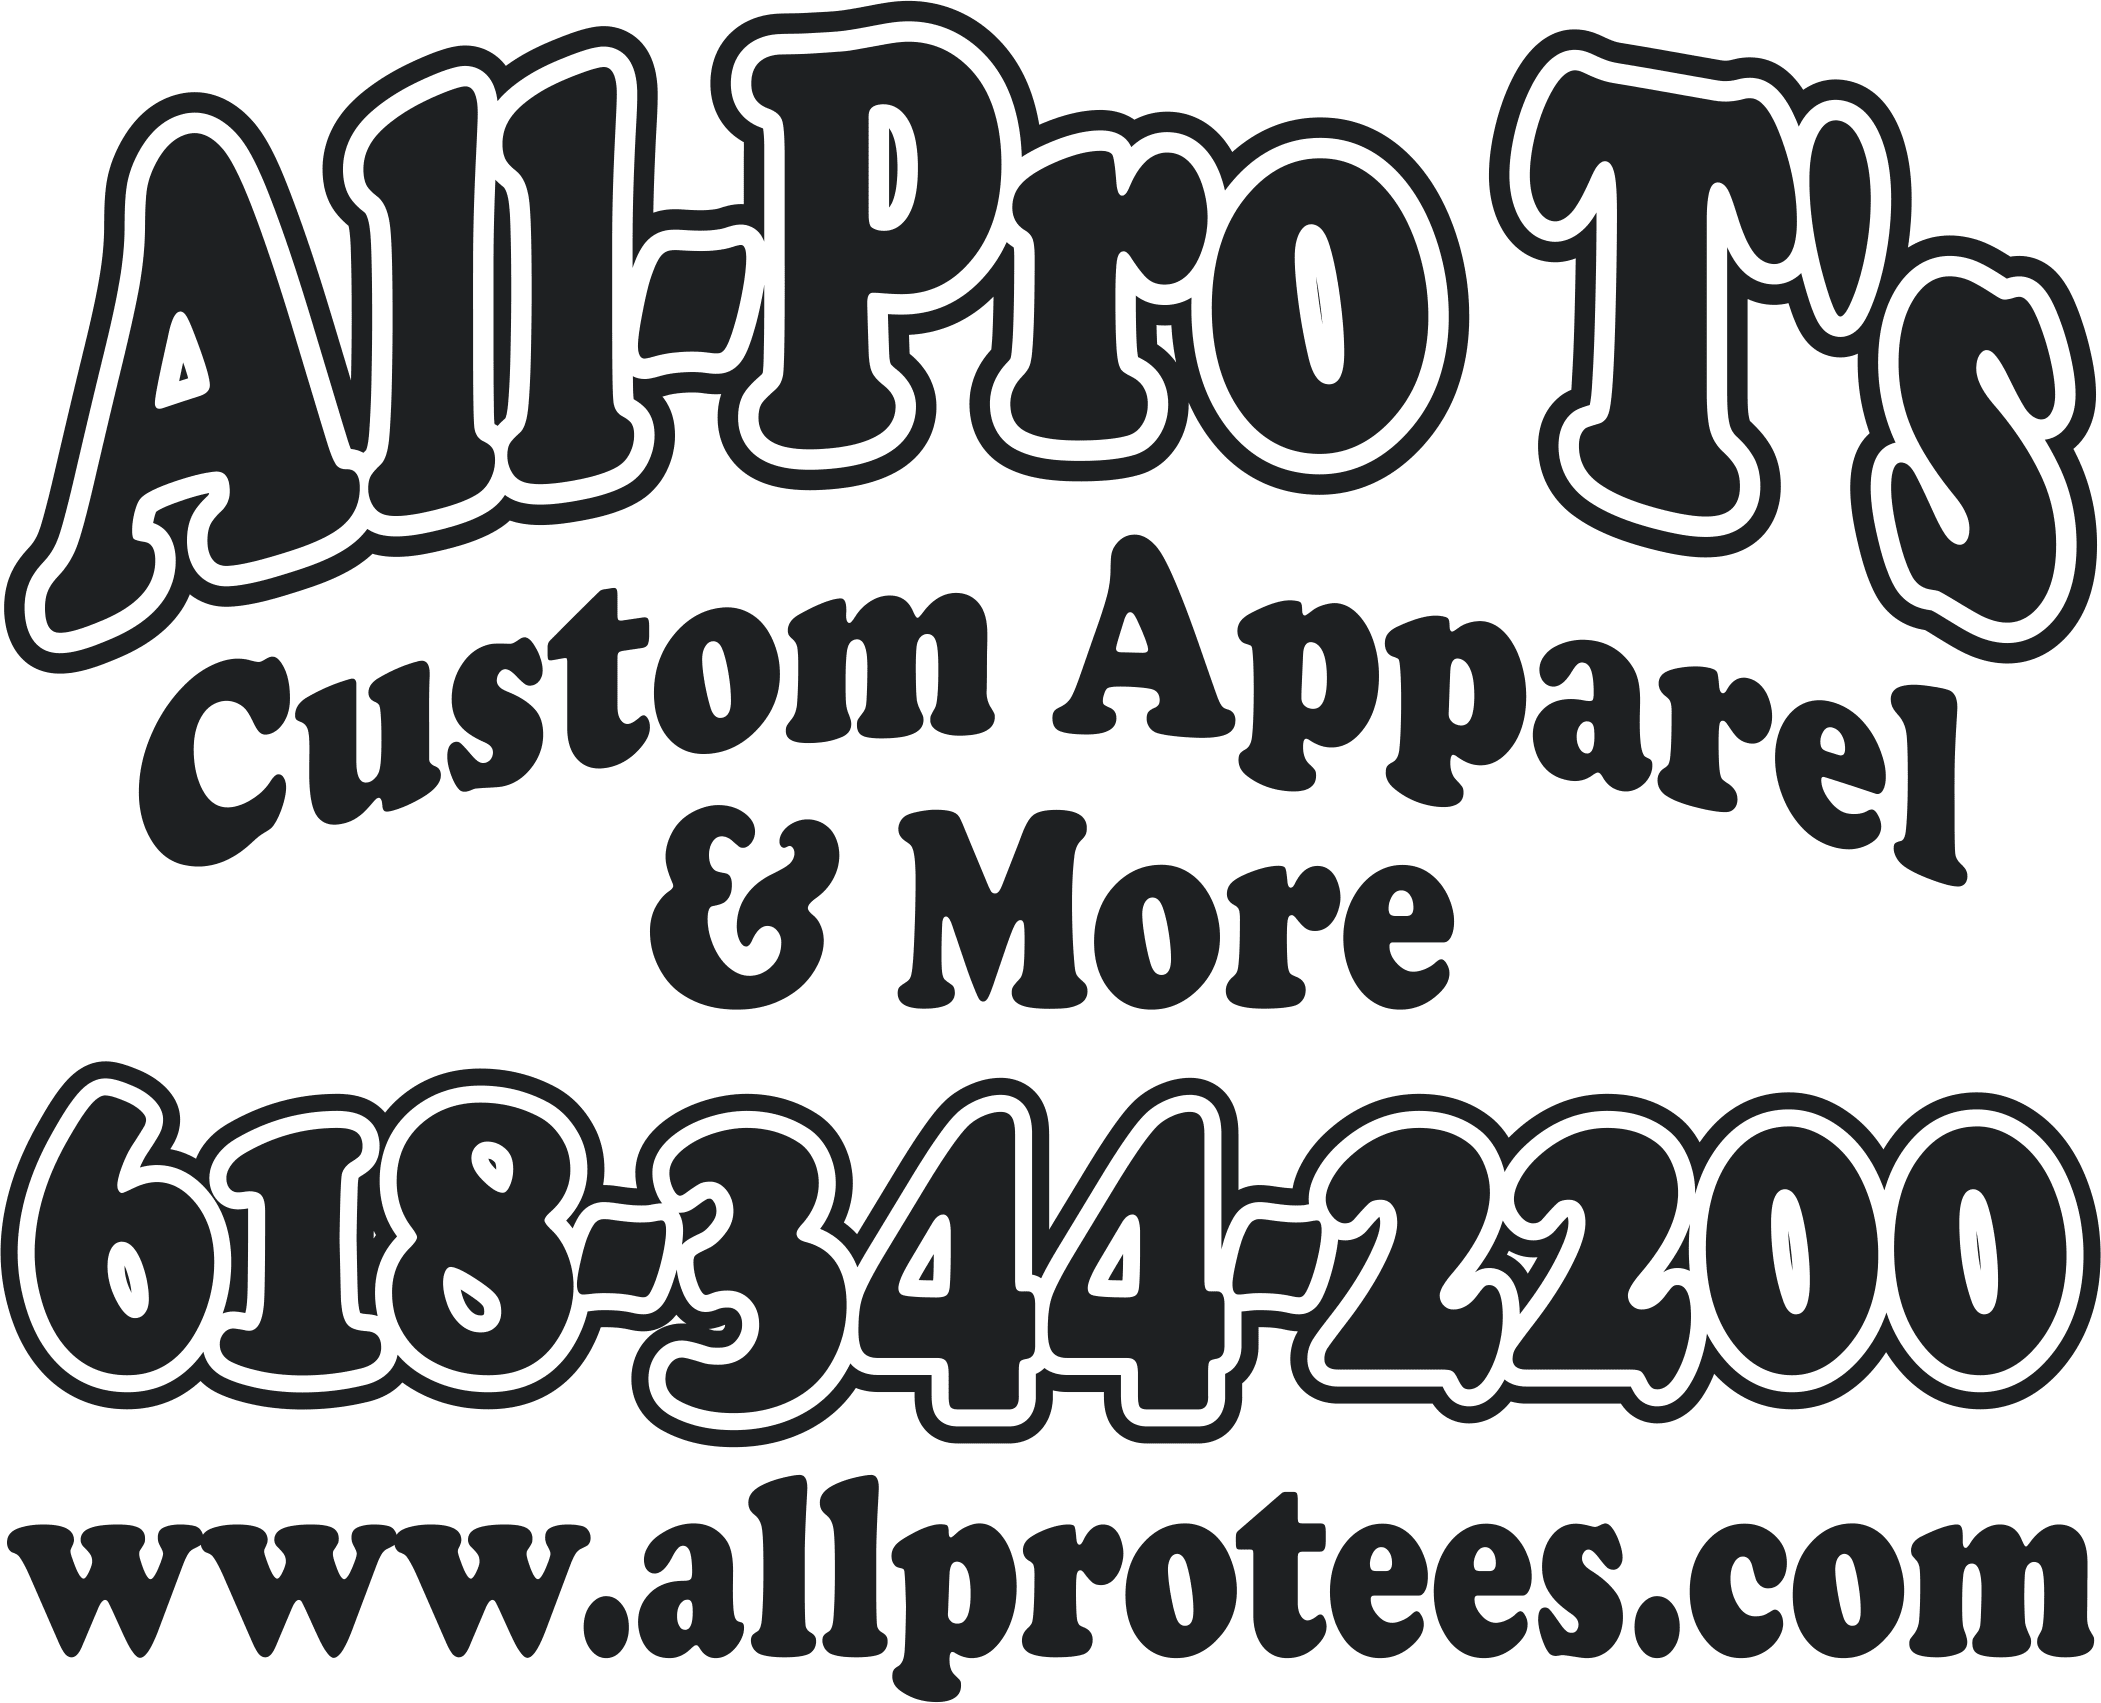 all-pro t's custom apparel and more collinsville illinois